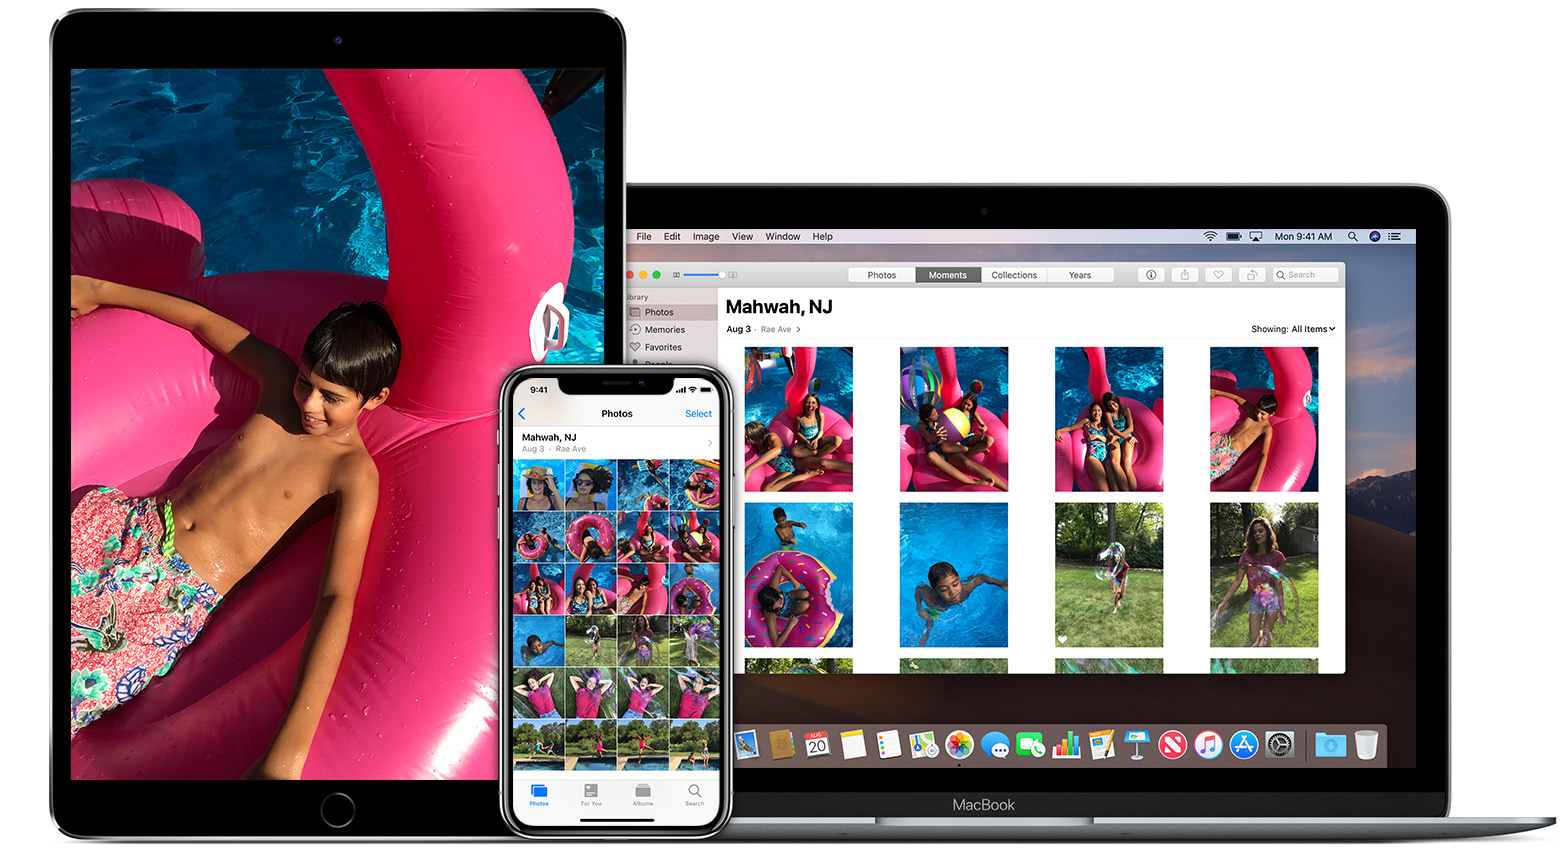 the Photos app on iPad, iPhone, and Mac